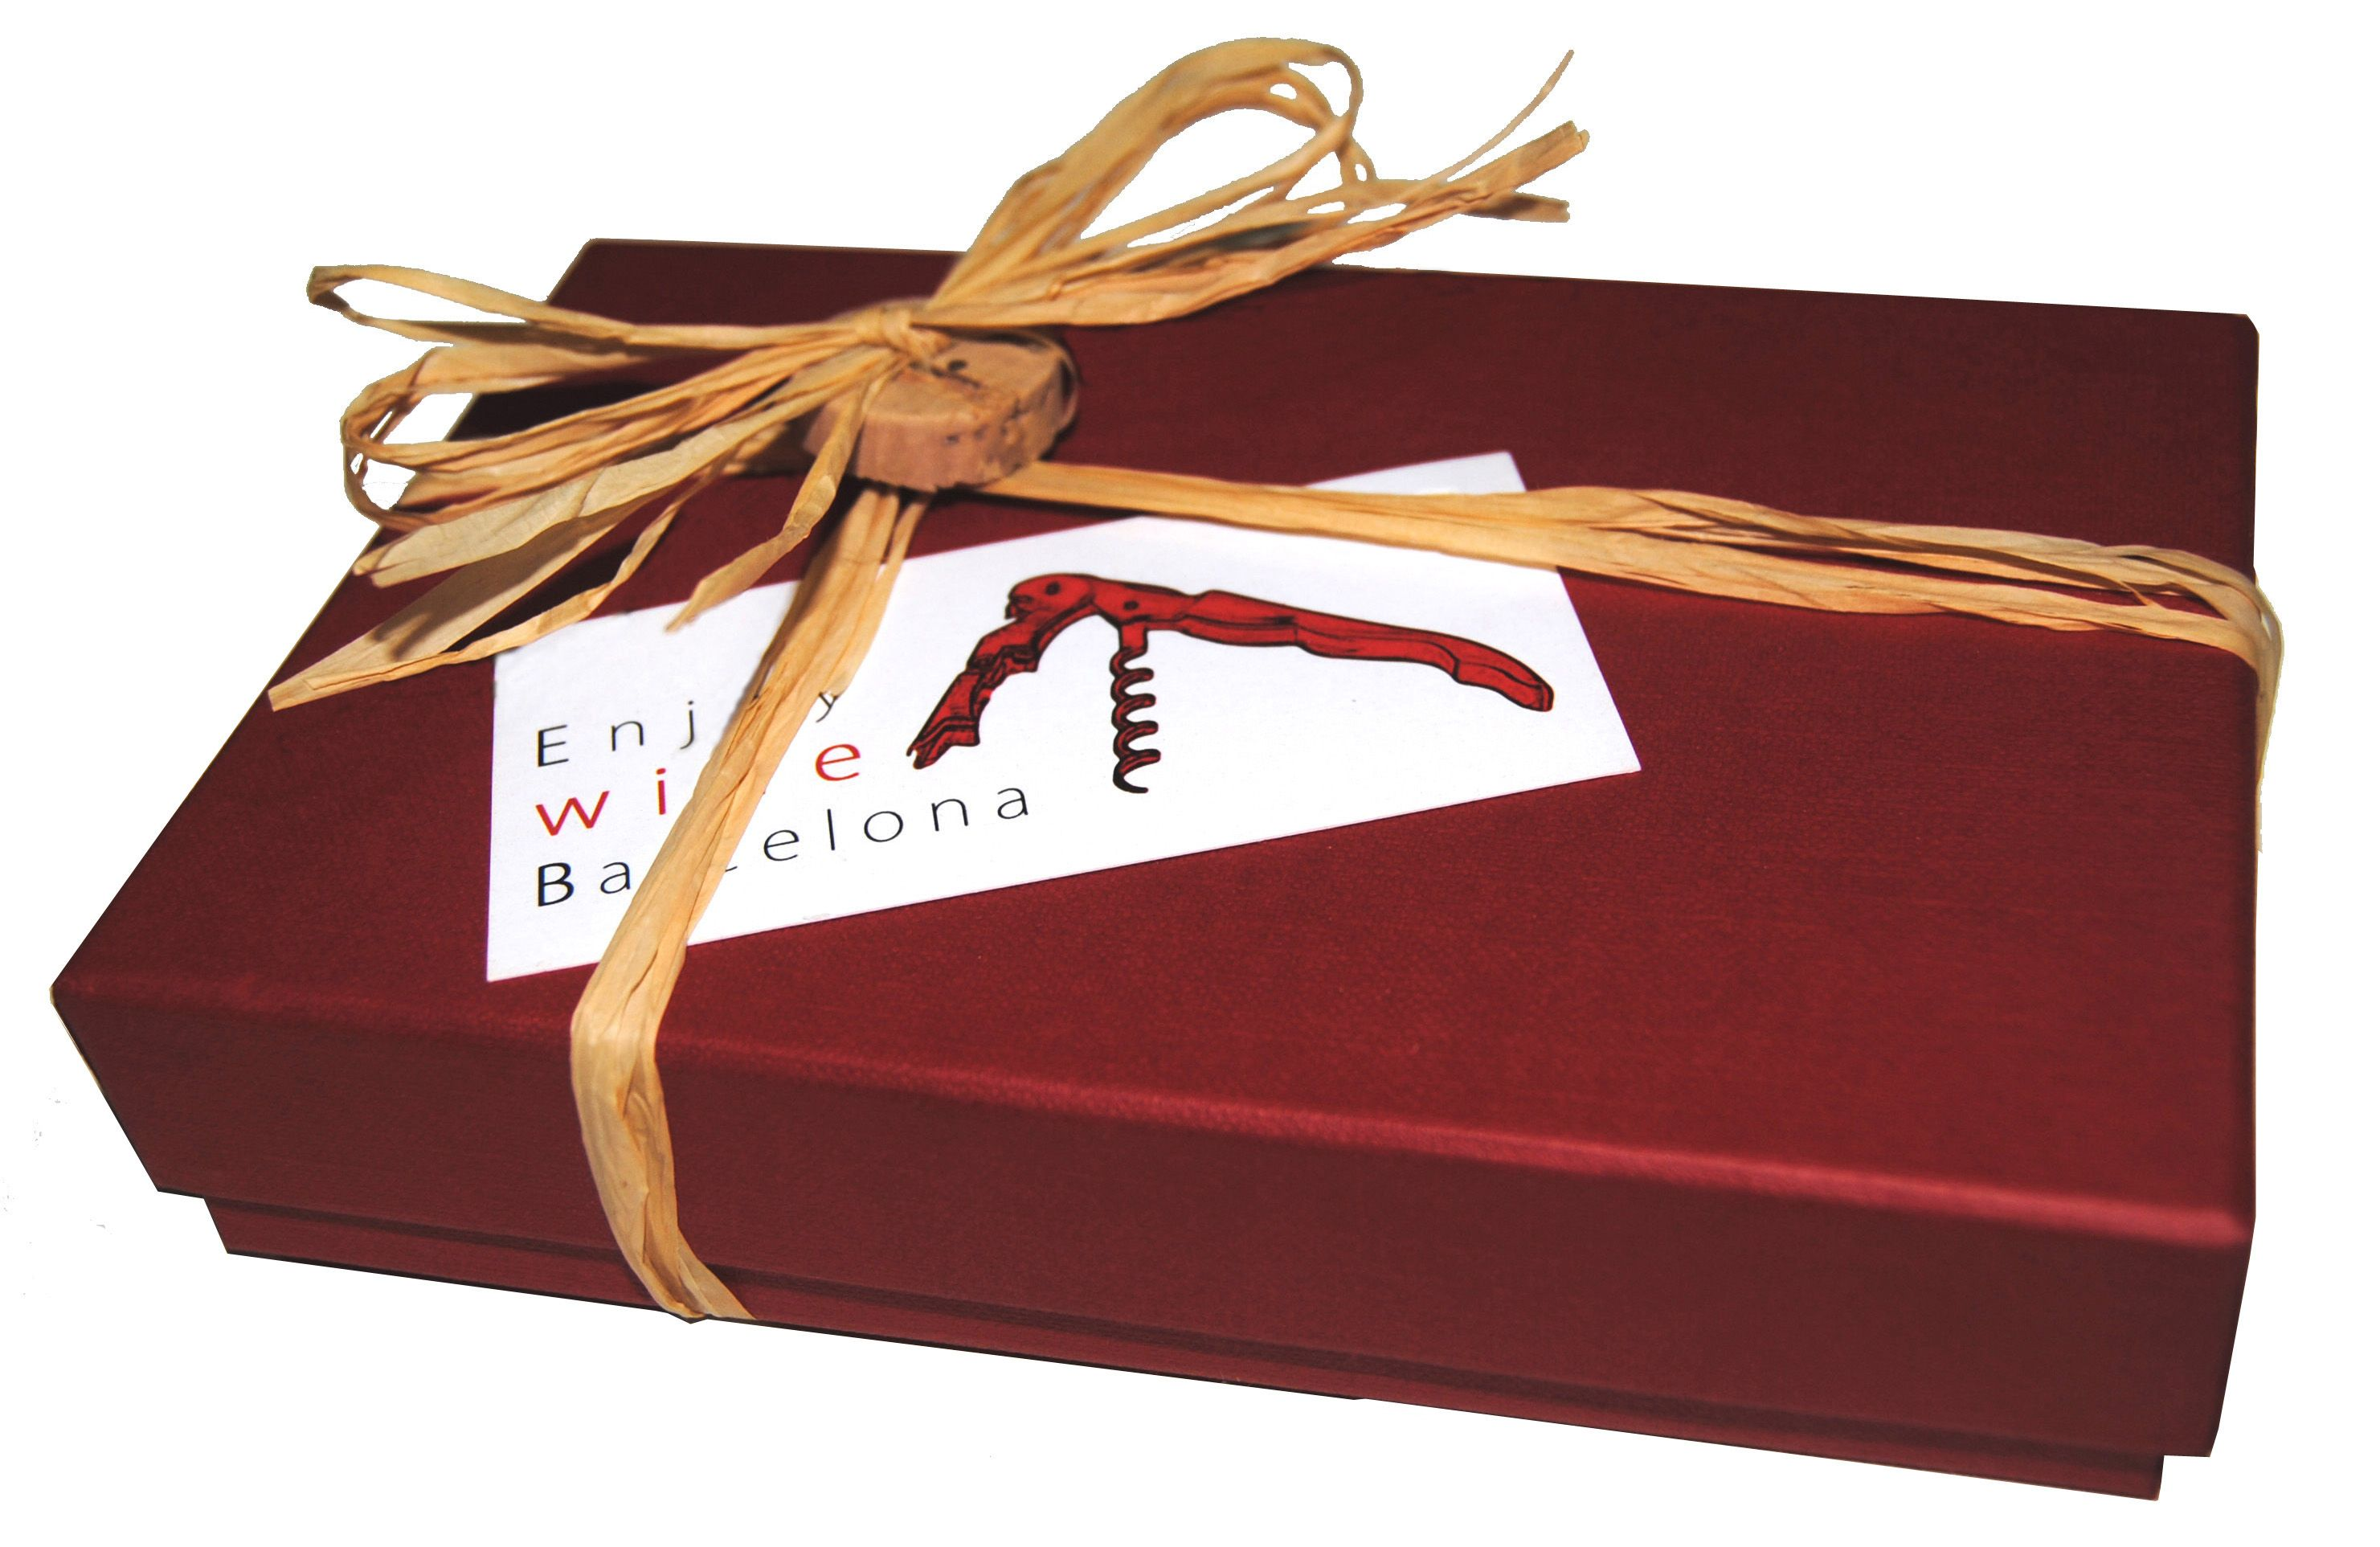 caixa regal Gift wrapping, Gifts, Wrap